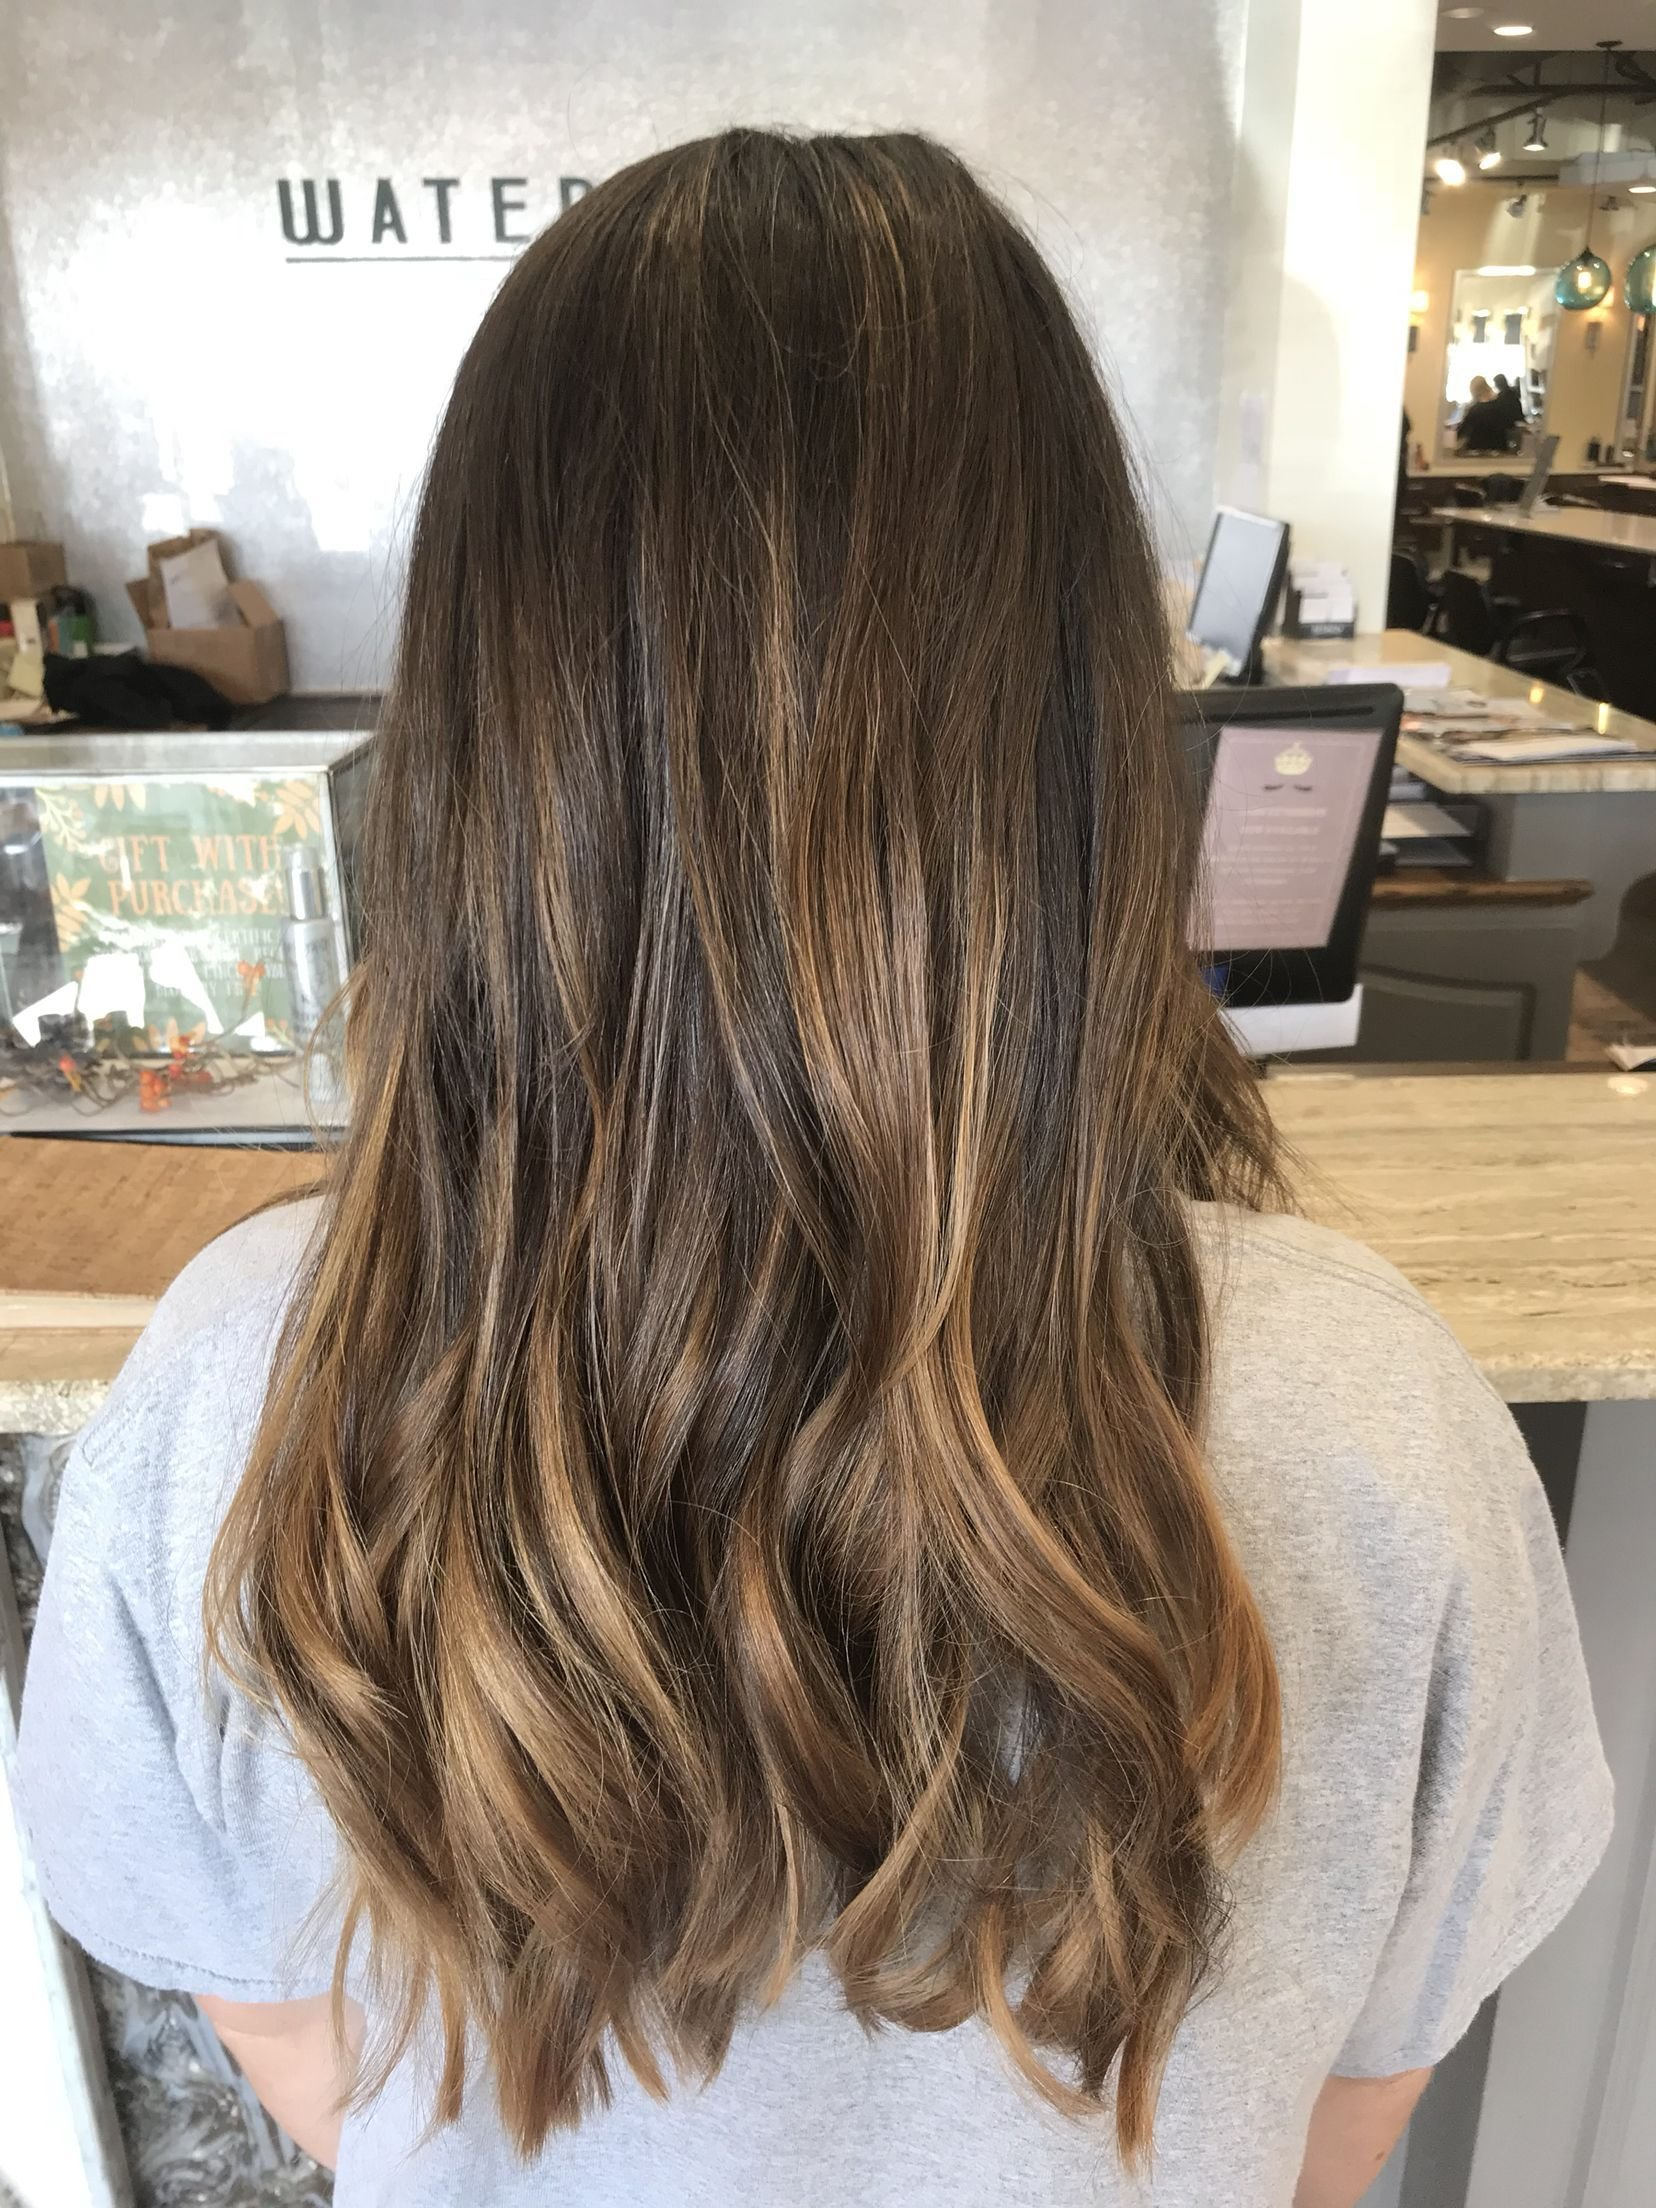 The Best Subtle Balayage On Brunette Hair Sun Kissed Caramel Pictures